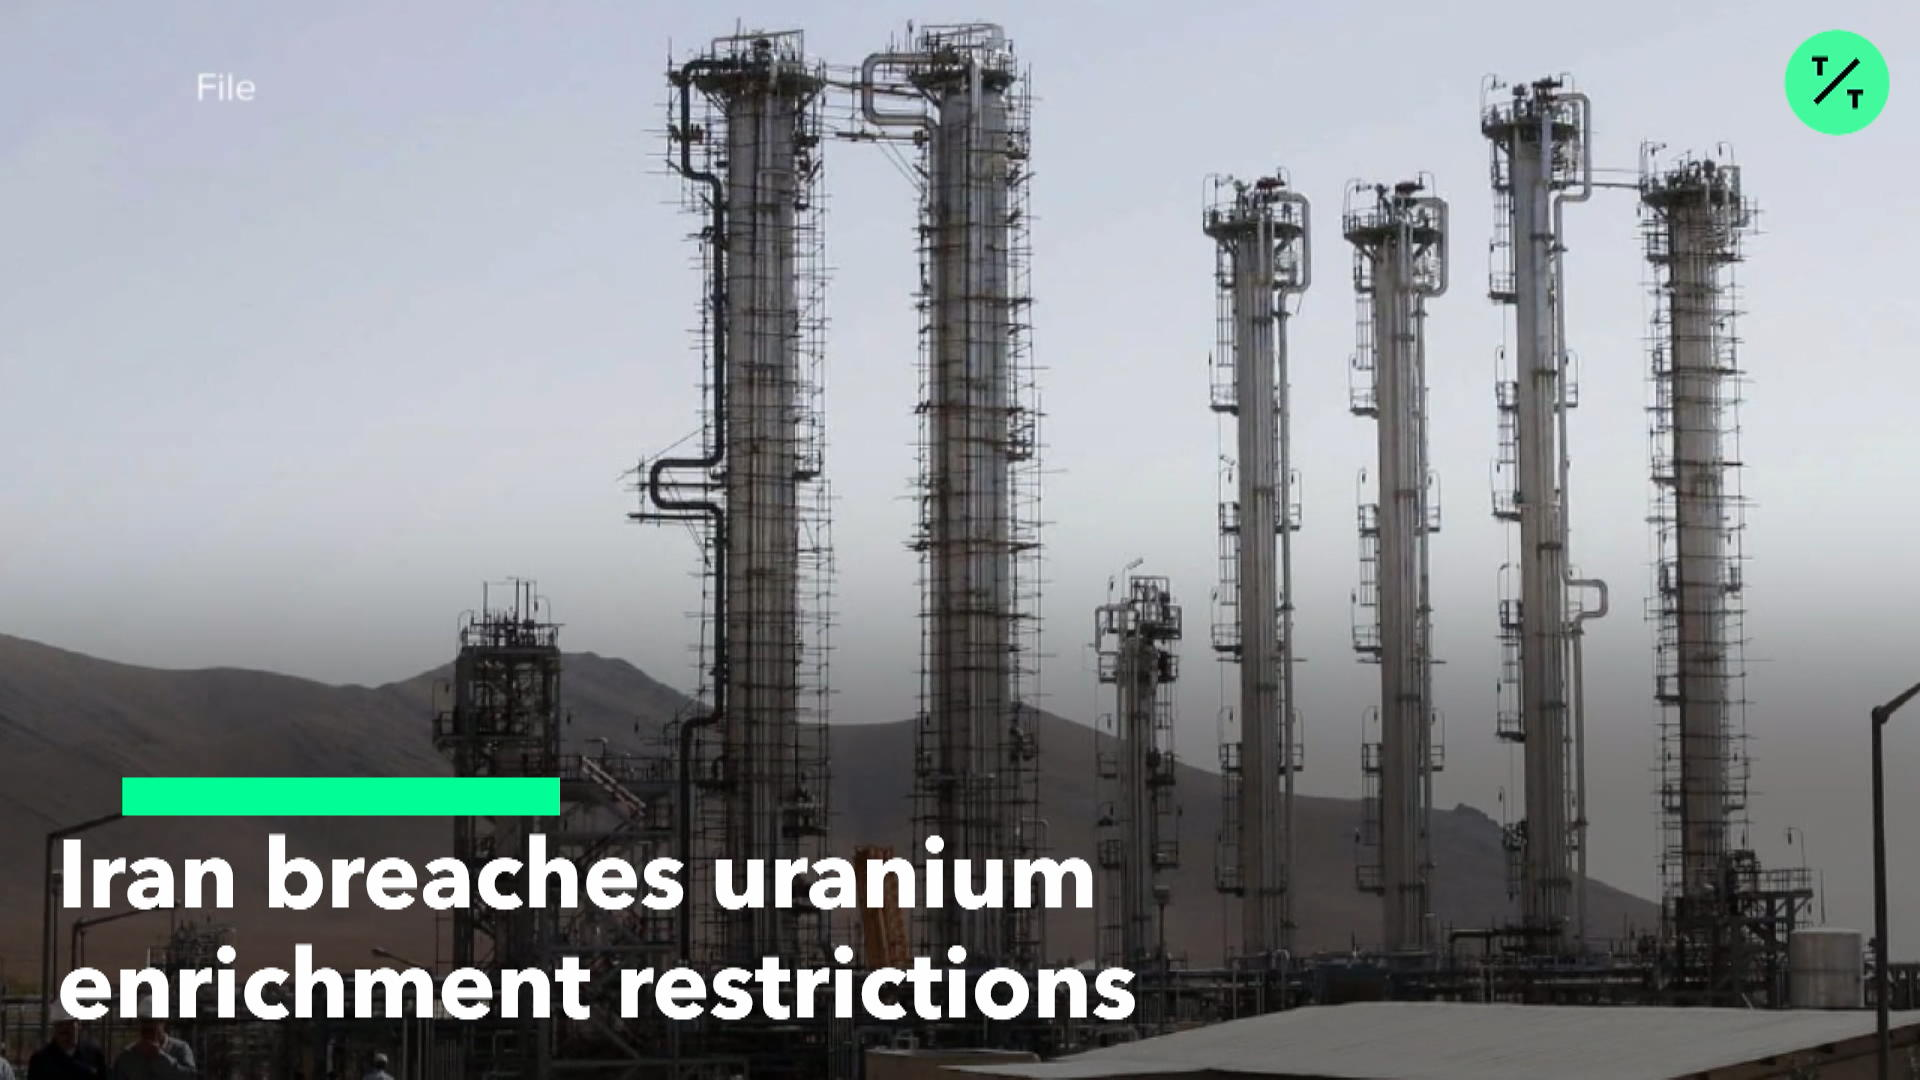 countrys uranium enrichment capacity - HD 1920×1080